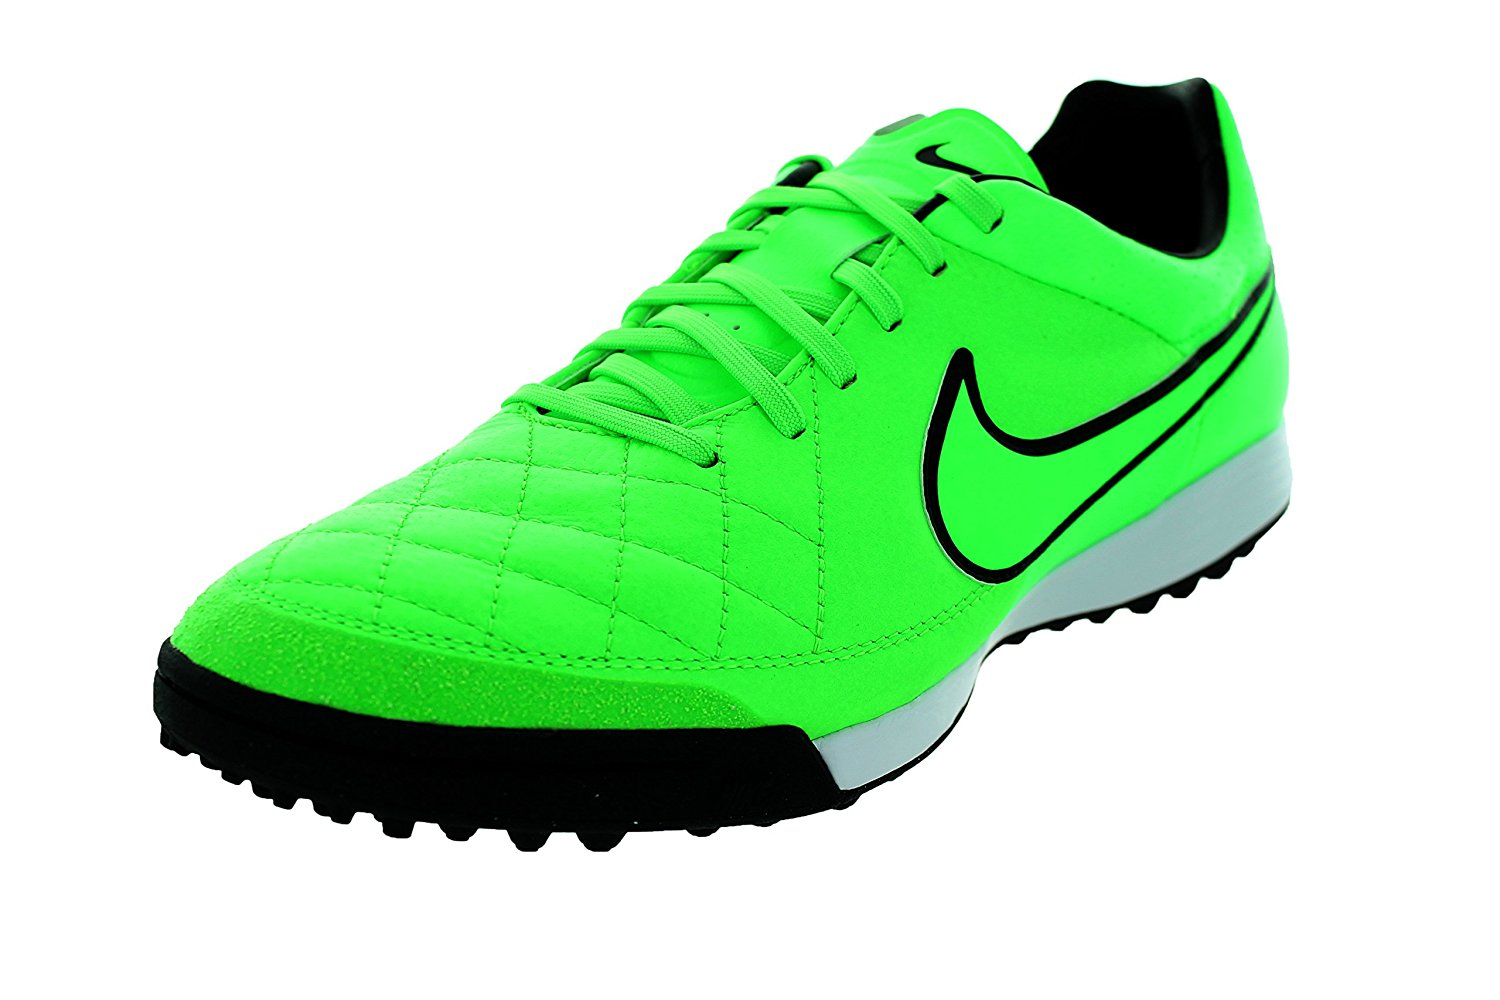 best website 15ce3 a2099 Cheap New Nike Tiempo 2013, find New Nike Tiempo 2013 deals ...